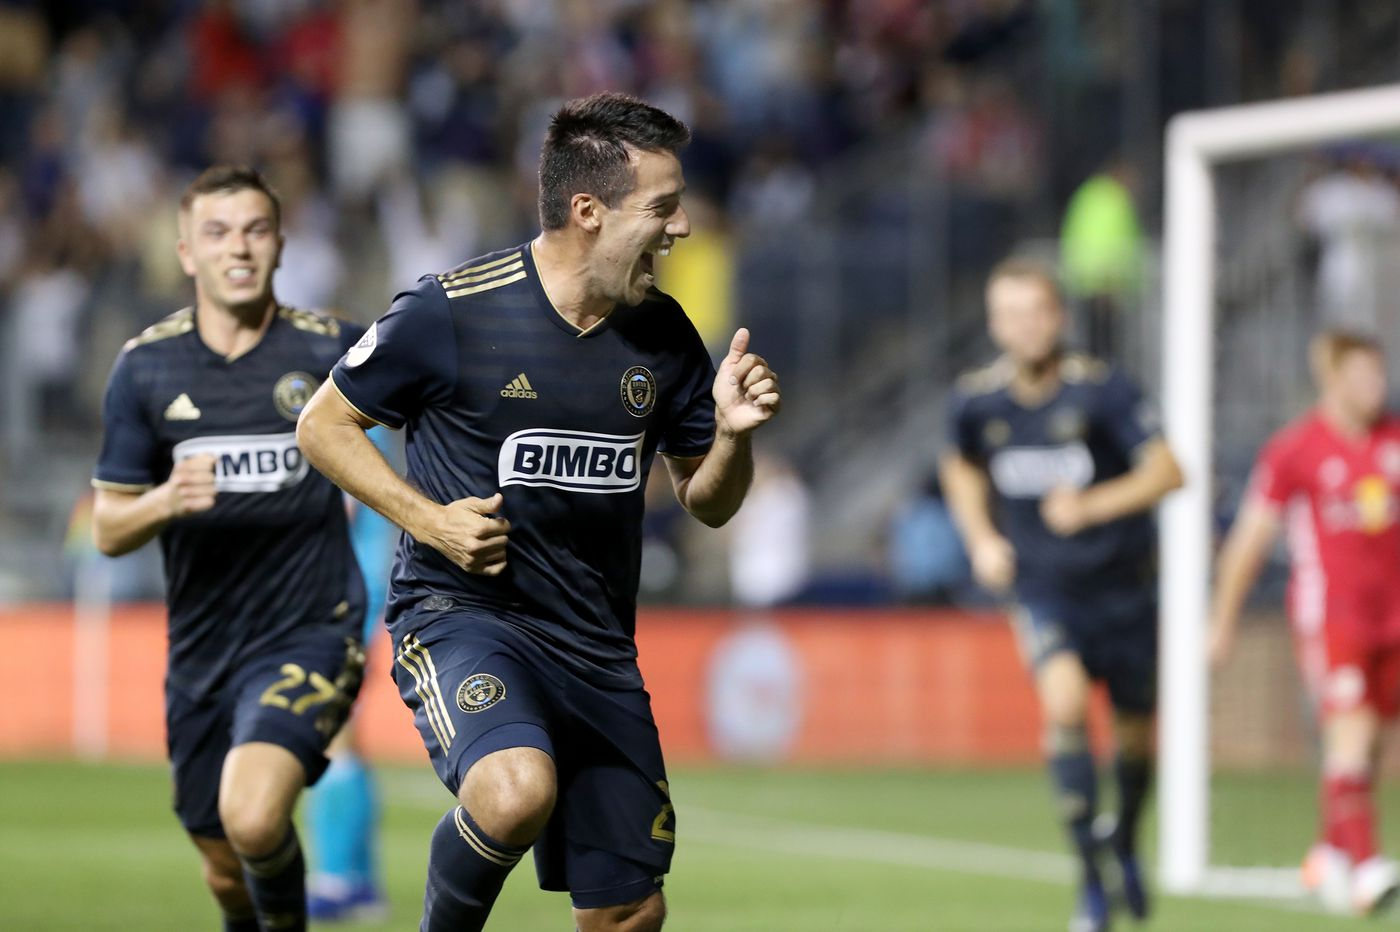 Ilsinho sparks stunning Union comeback in 3-2 win over New York Red Bulls